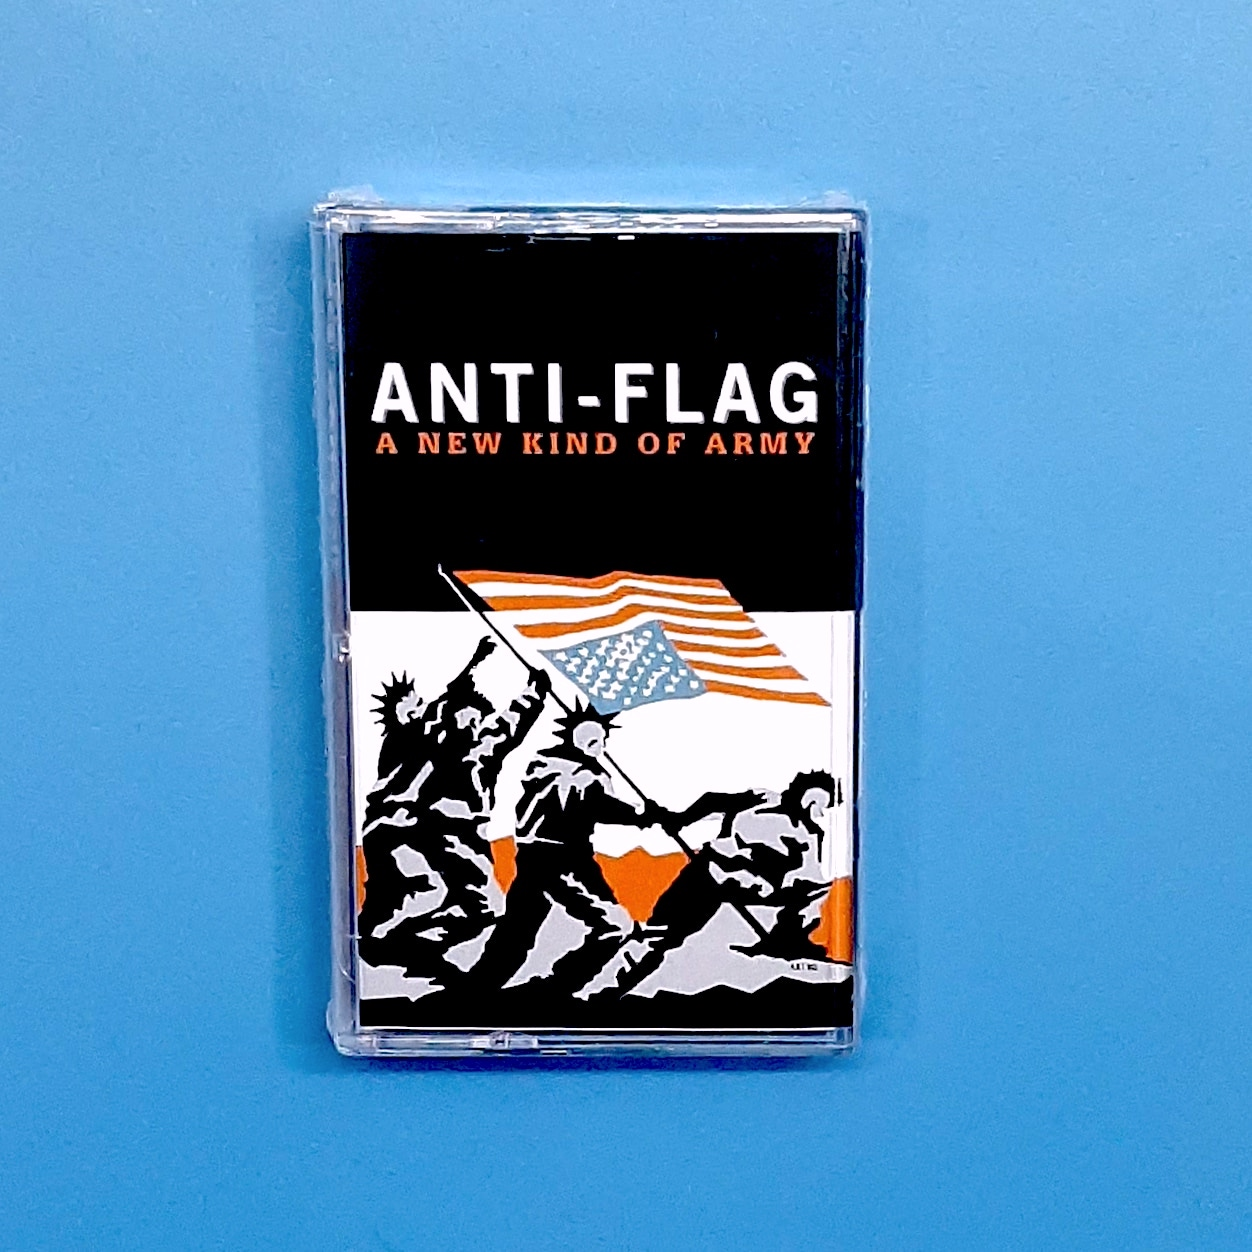 Anti-Flag - A New Kind of Army (Get Better Records)